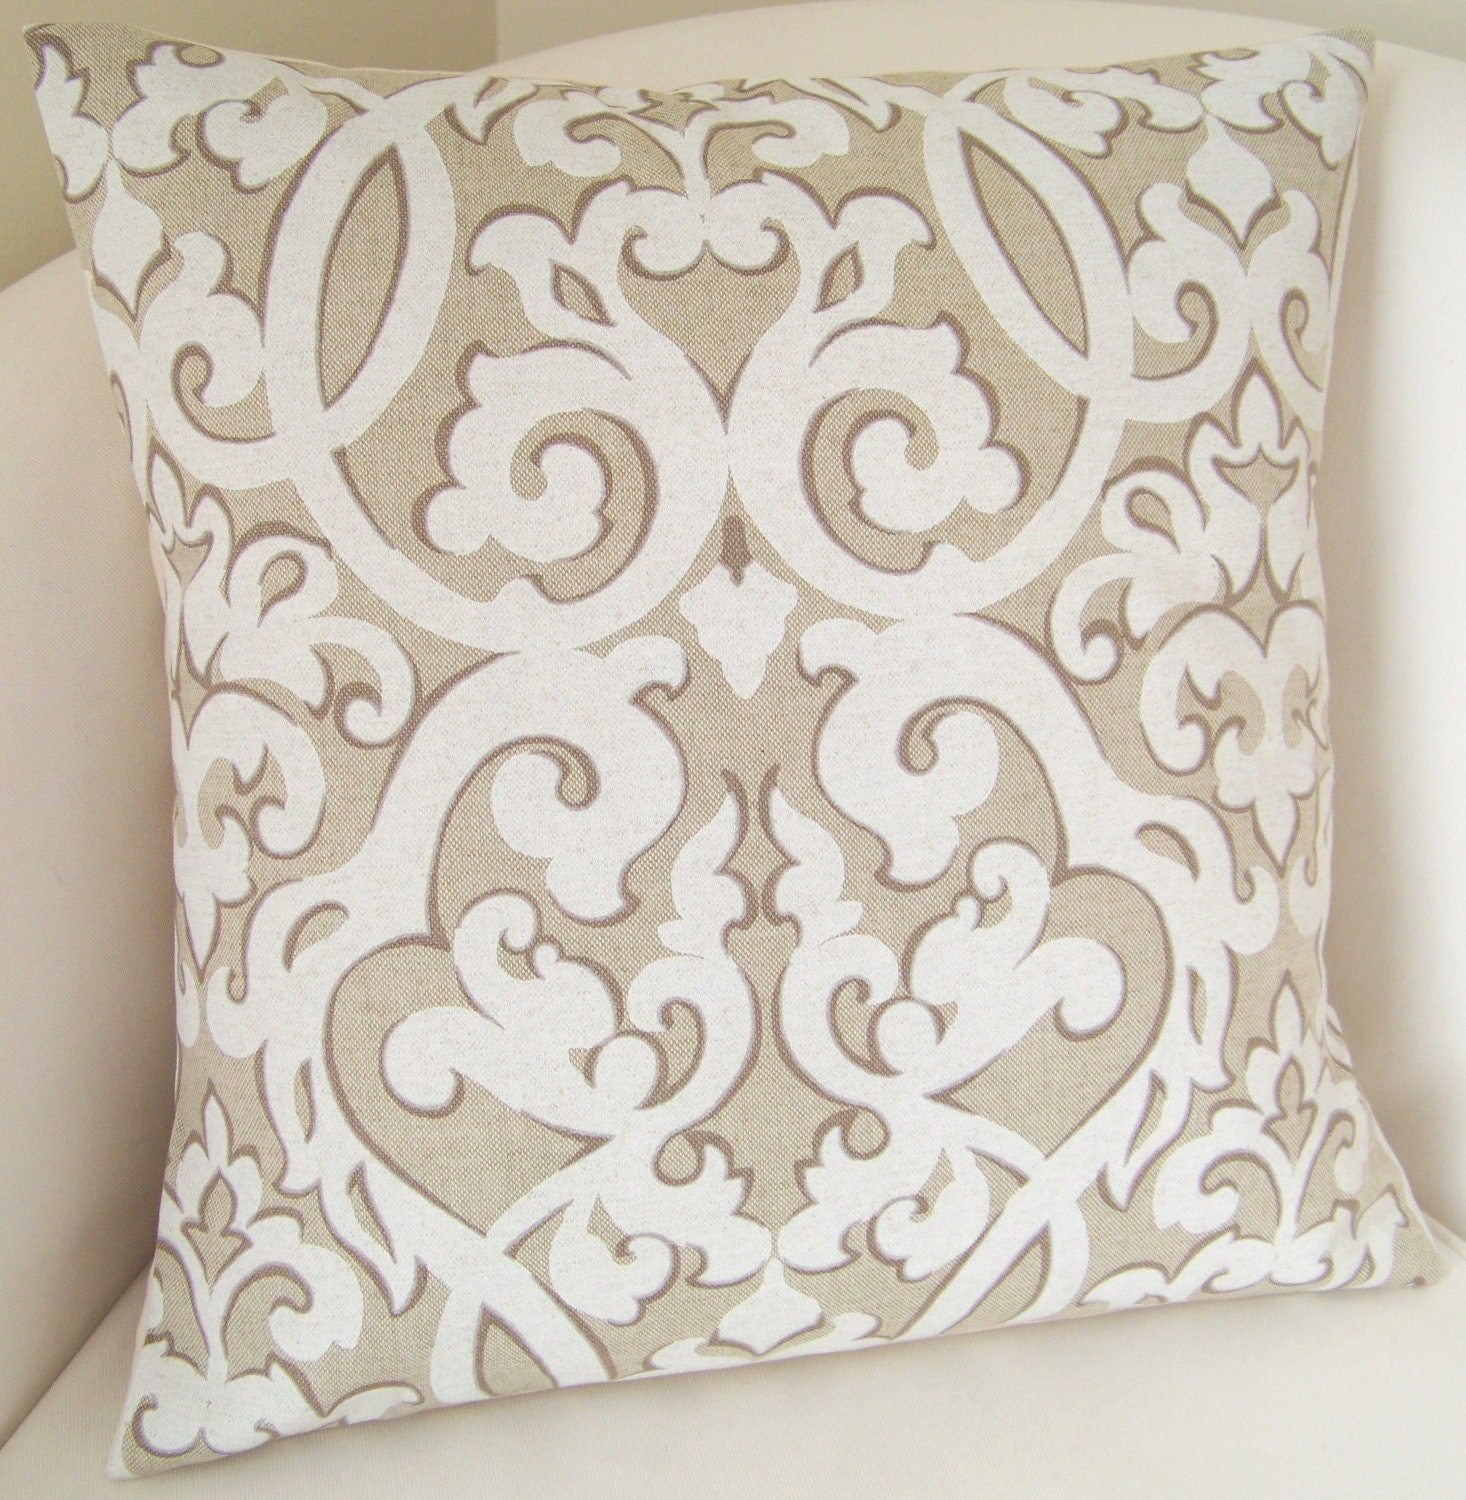 Throw Pillows Native American : Decorative Throw Pillow Cover Neutral Pillow Cushion Accent